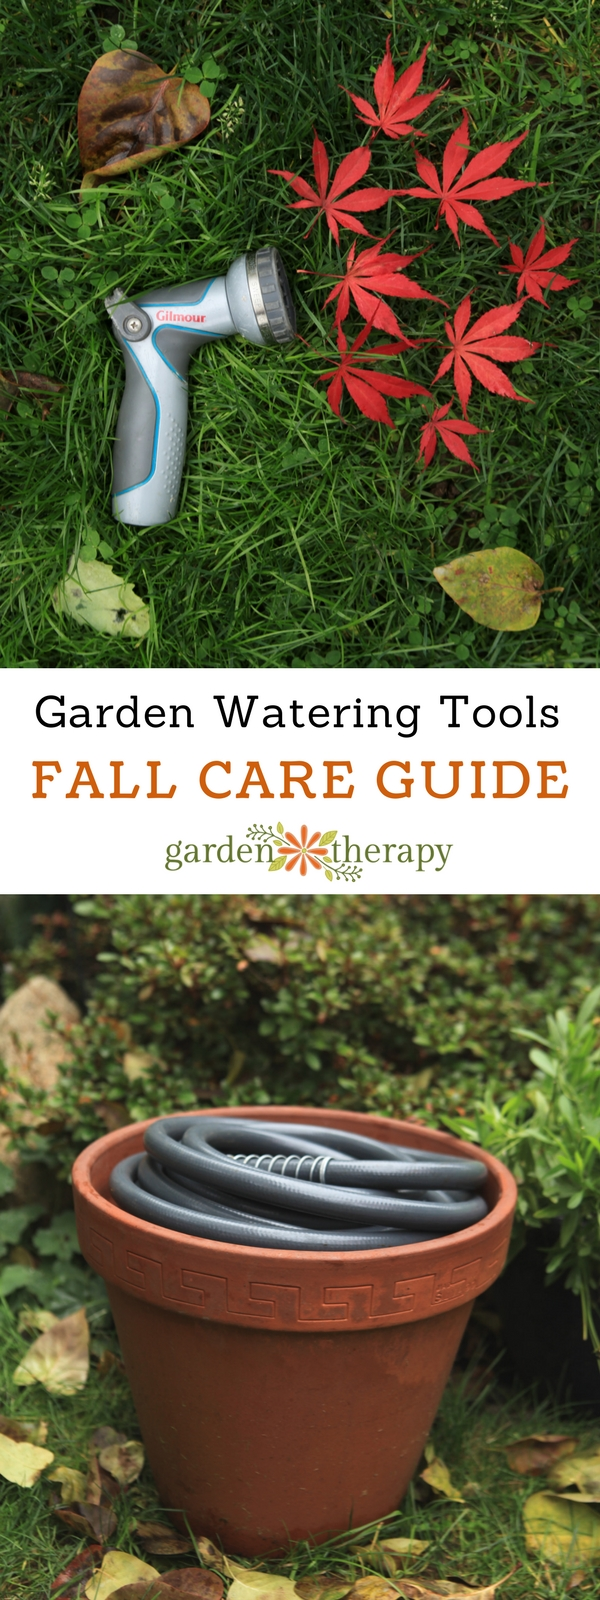 garden watering tools care guide